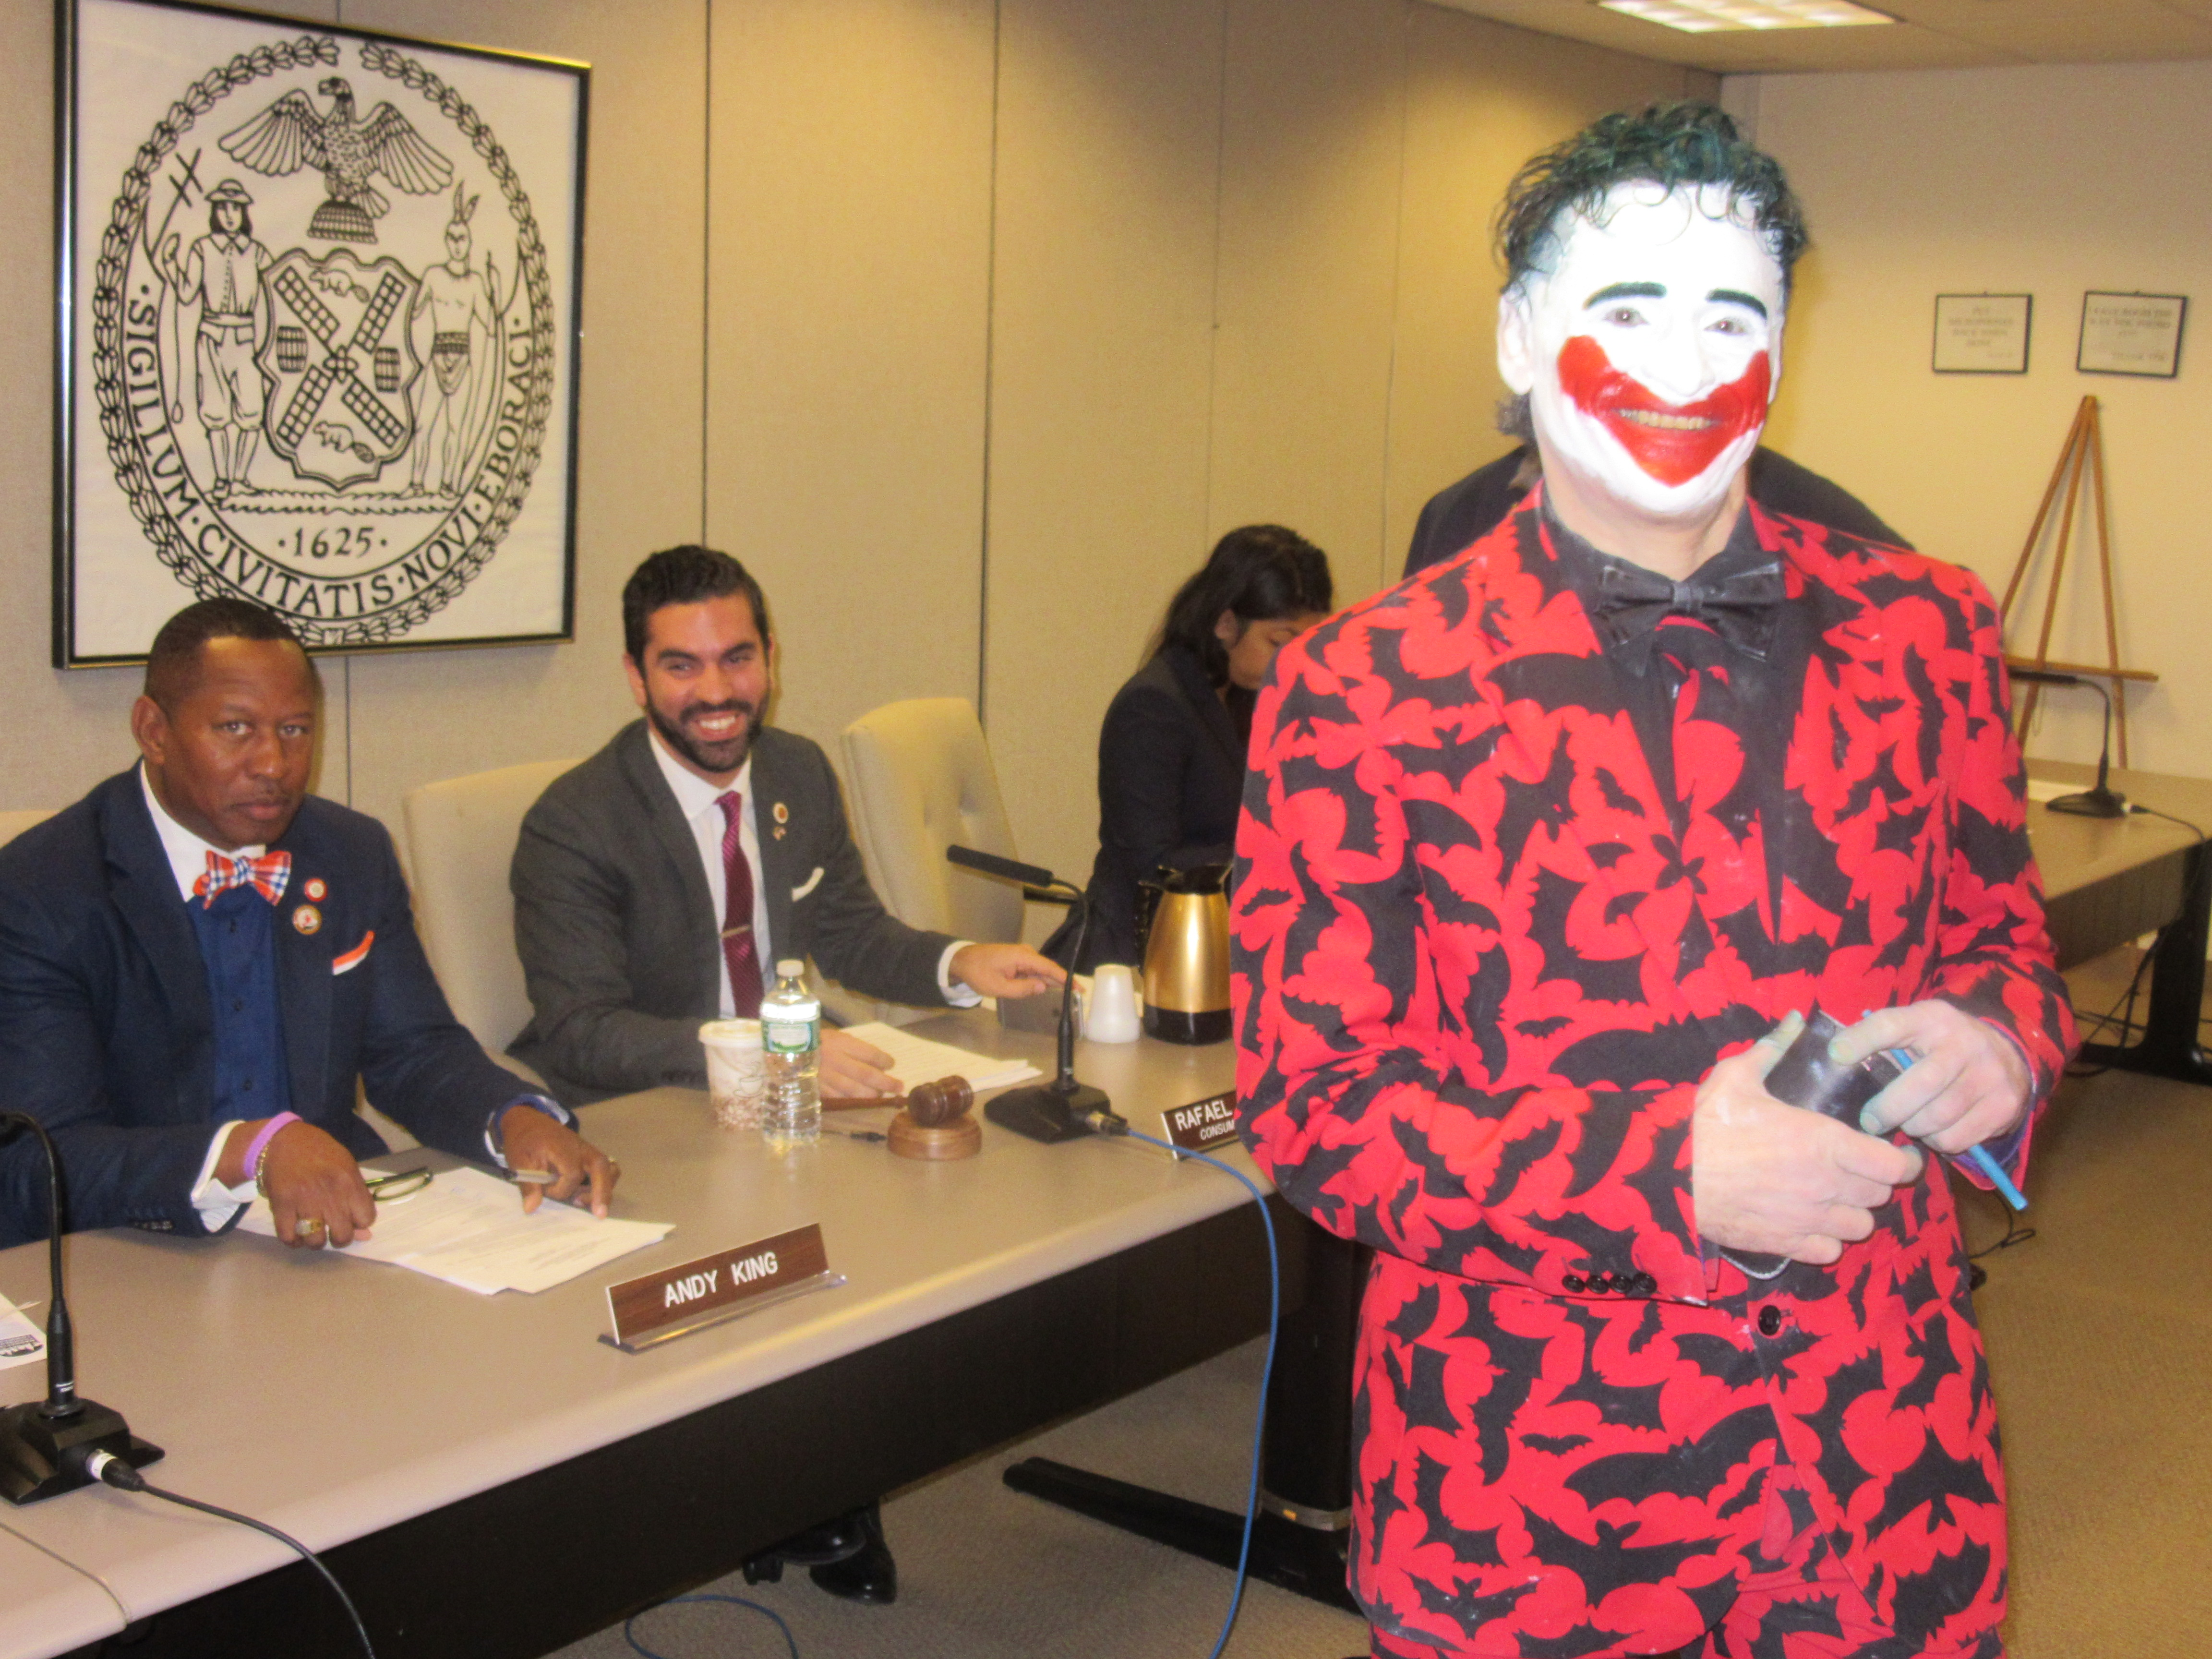 Councilman Andy King and Councilman Rafael Espinal hold their composure as Keith Albahae, also known as the Joker, arrives at the hearing (Photo: Will Bredderman).